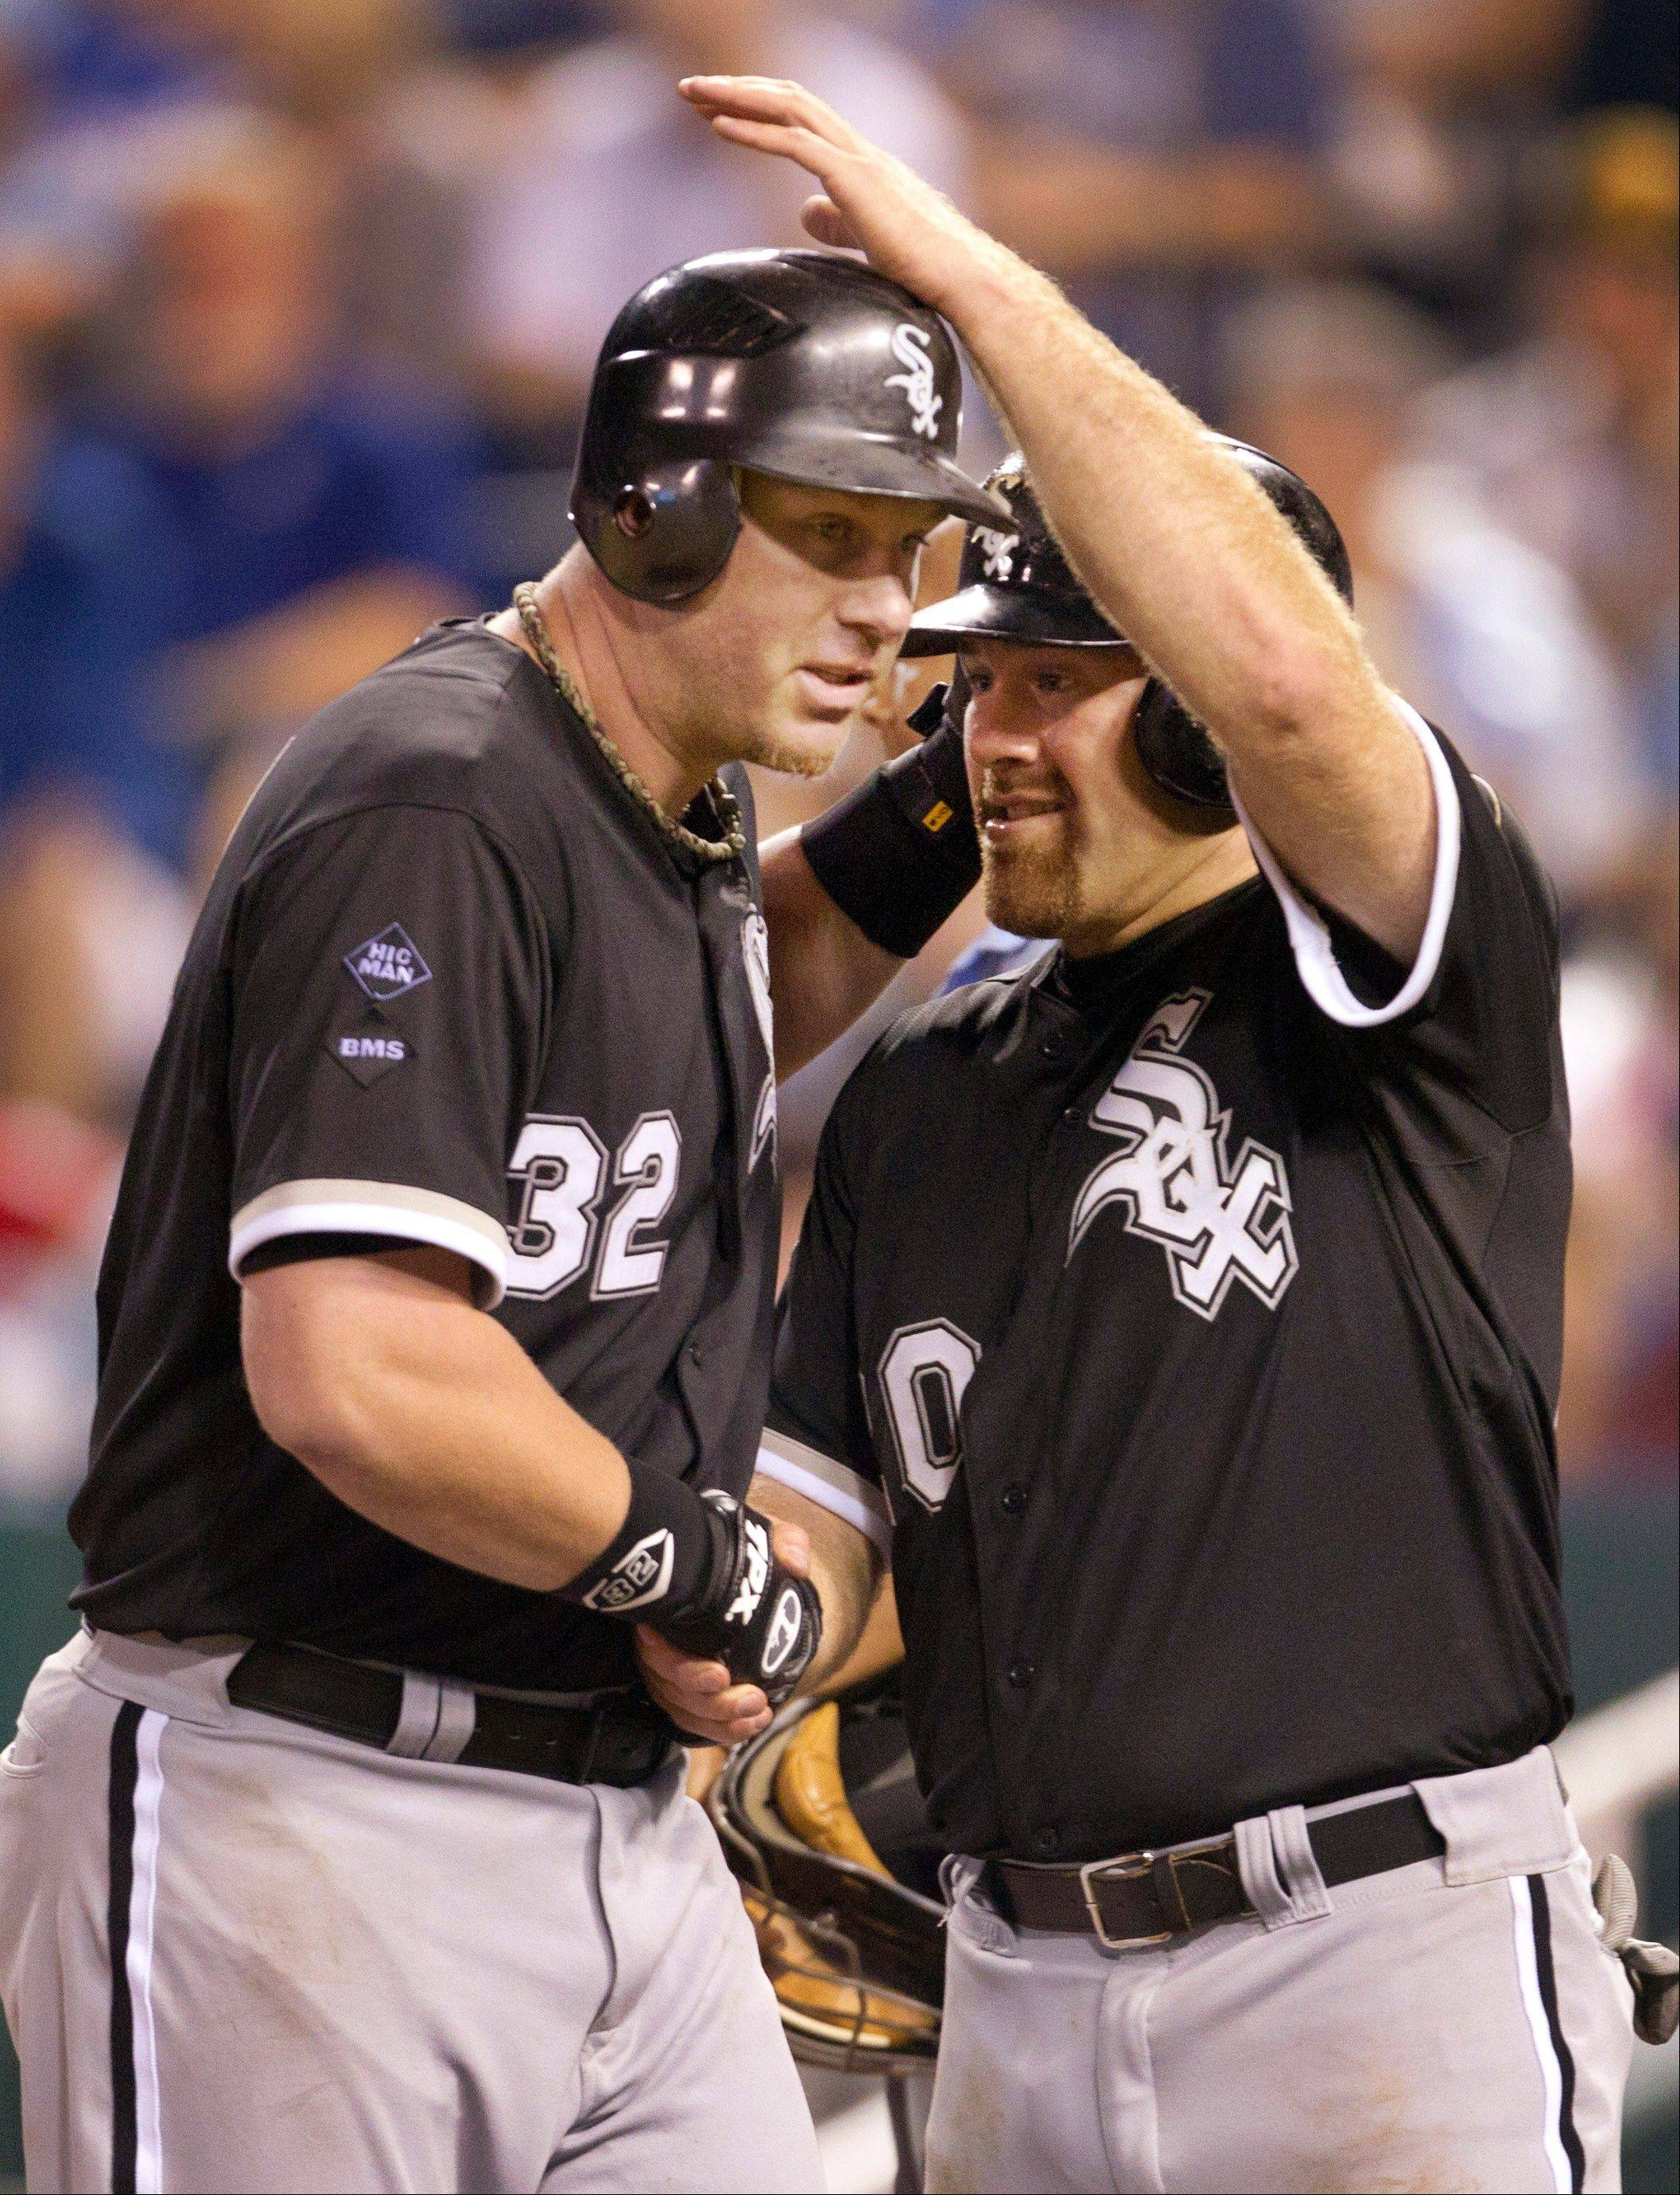 Adam Dunn, left, is congratulated by White Sox teammate Kevin Youkilis after hitting career home run No. 400 on Saturday.